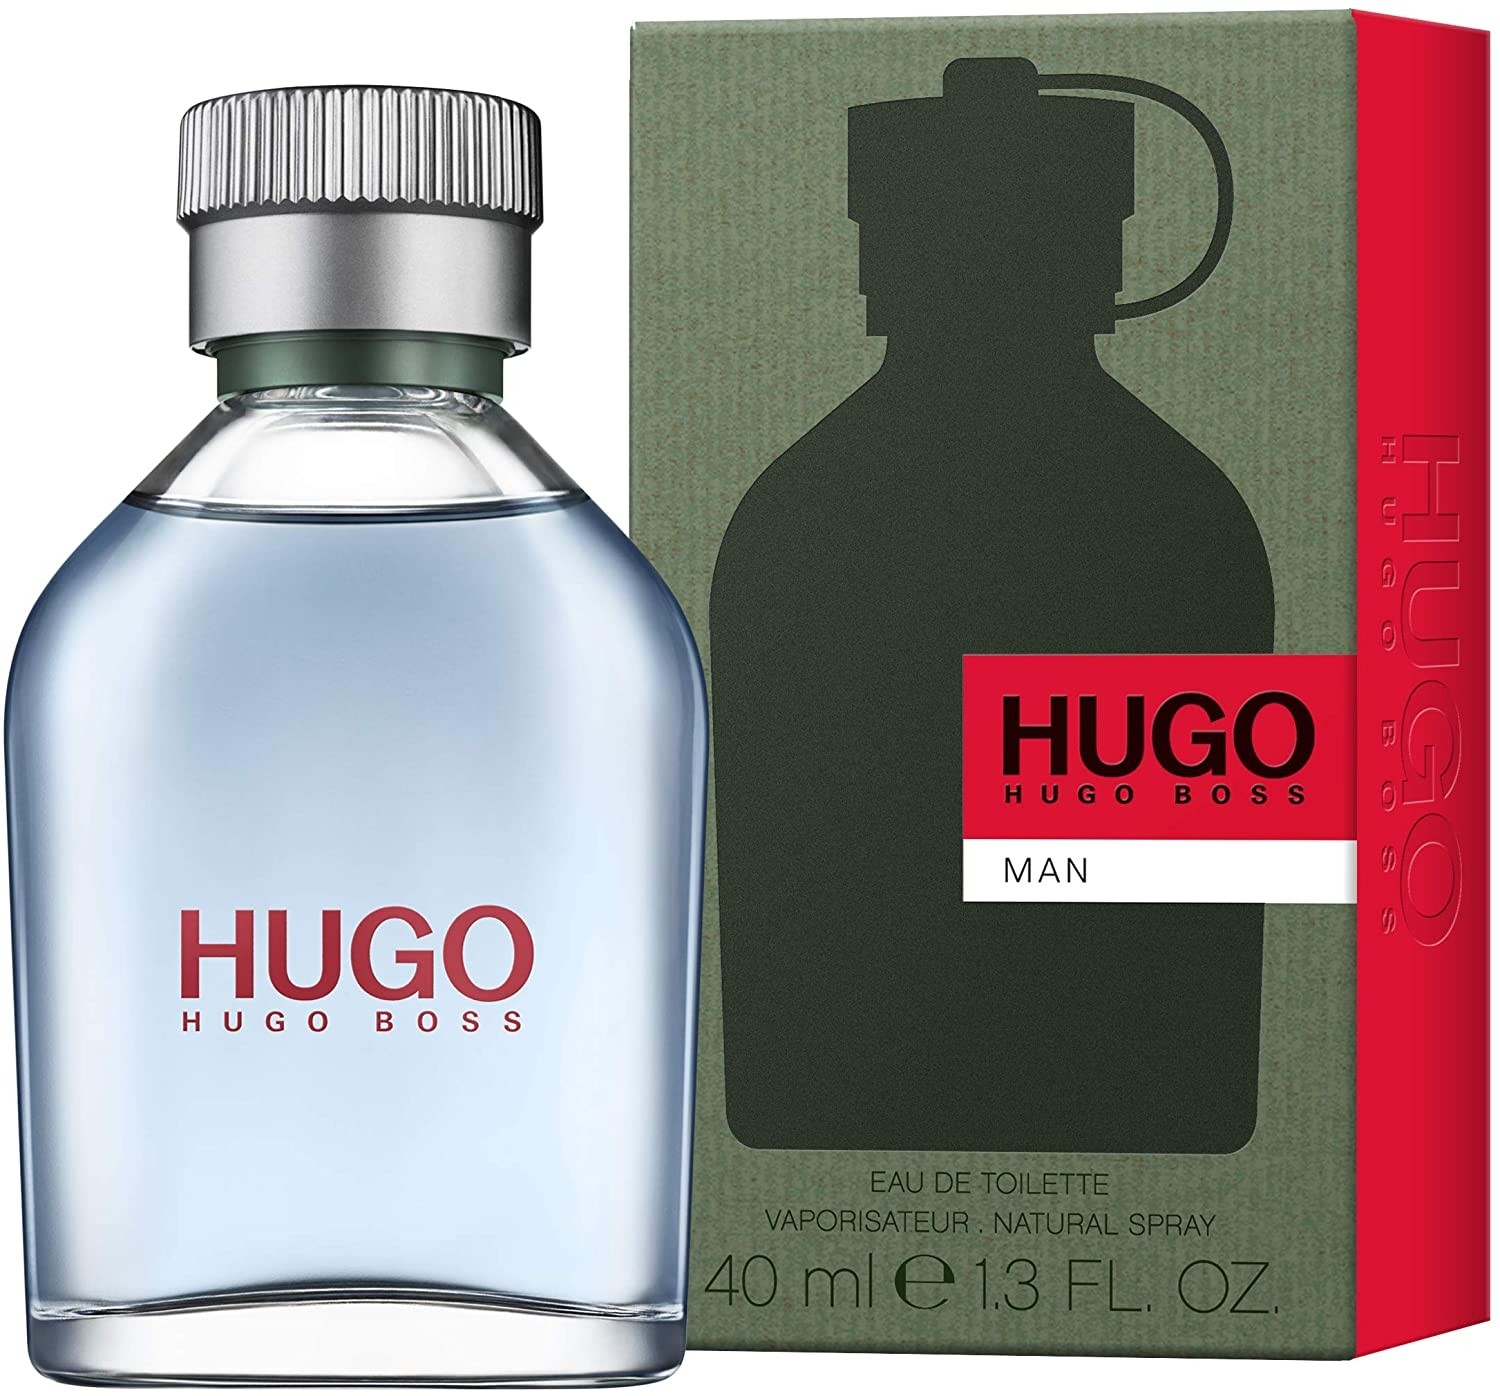 HUGO Man Eau de Toilette 40ml